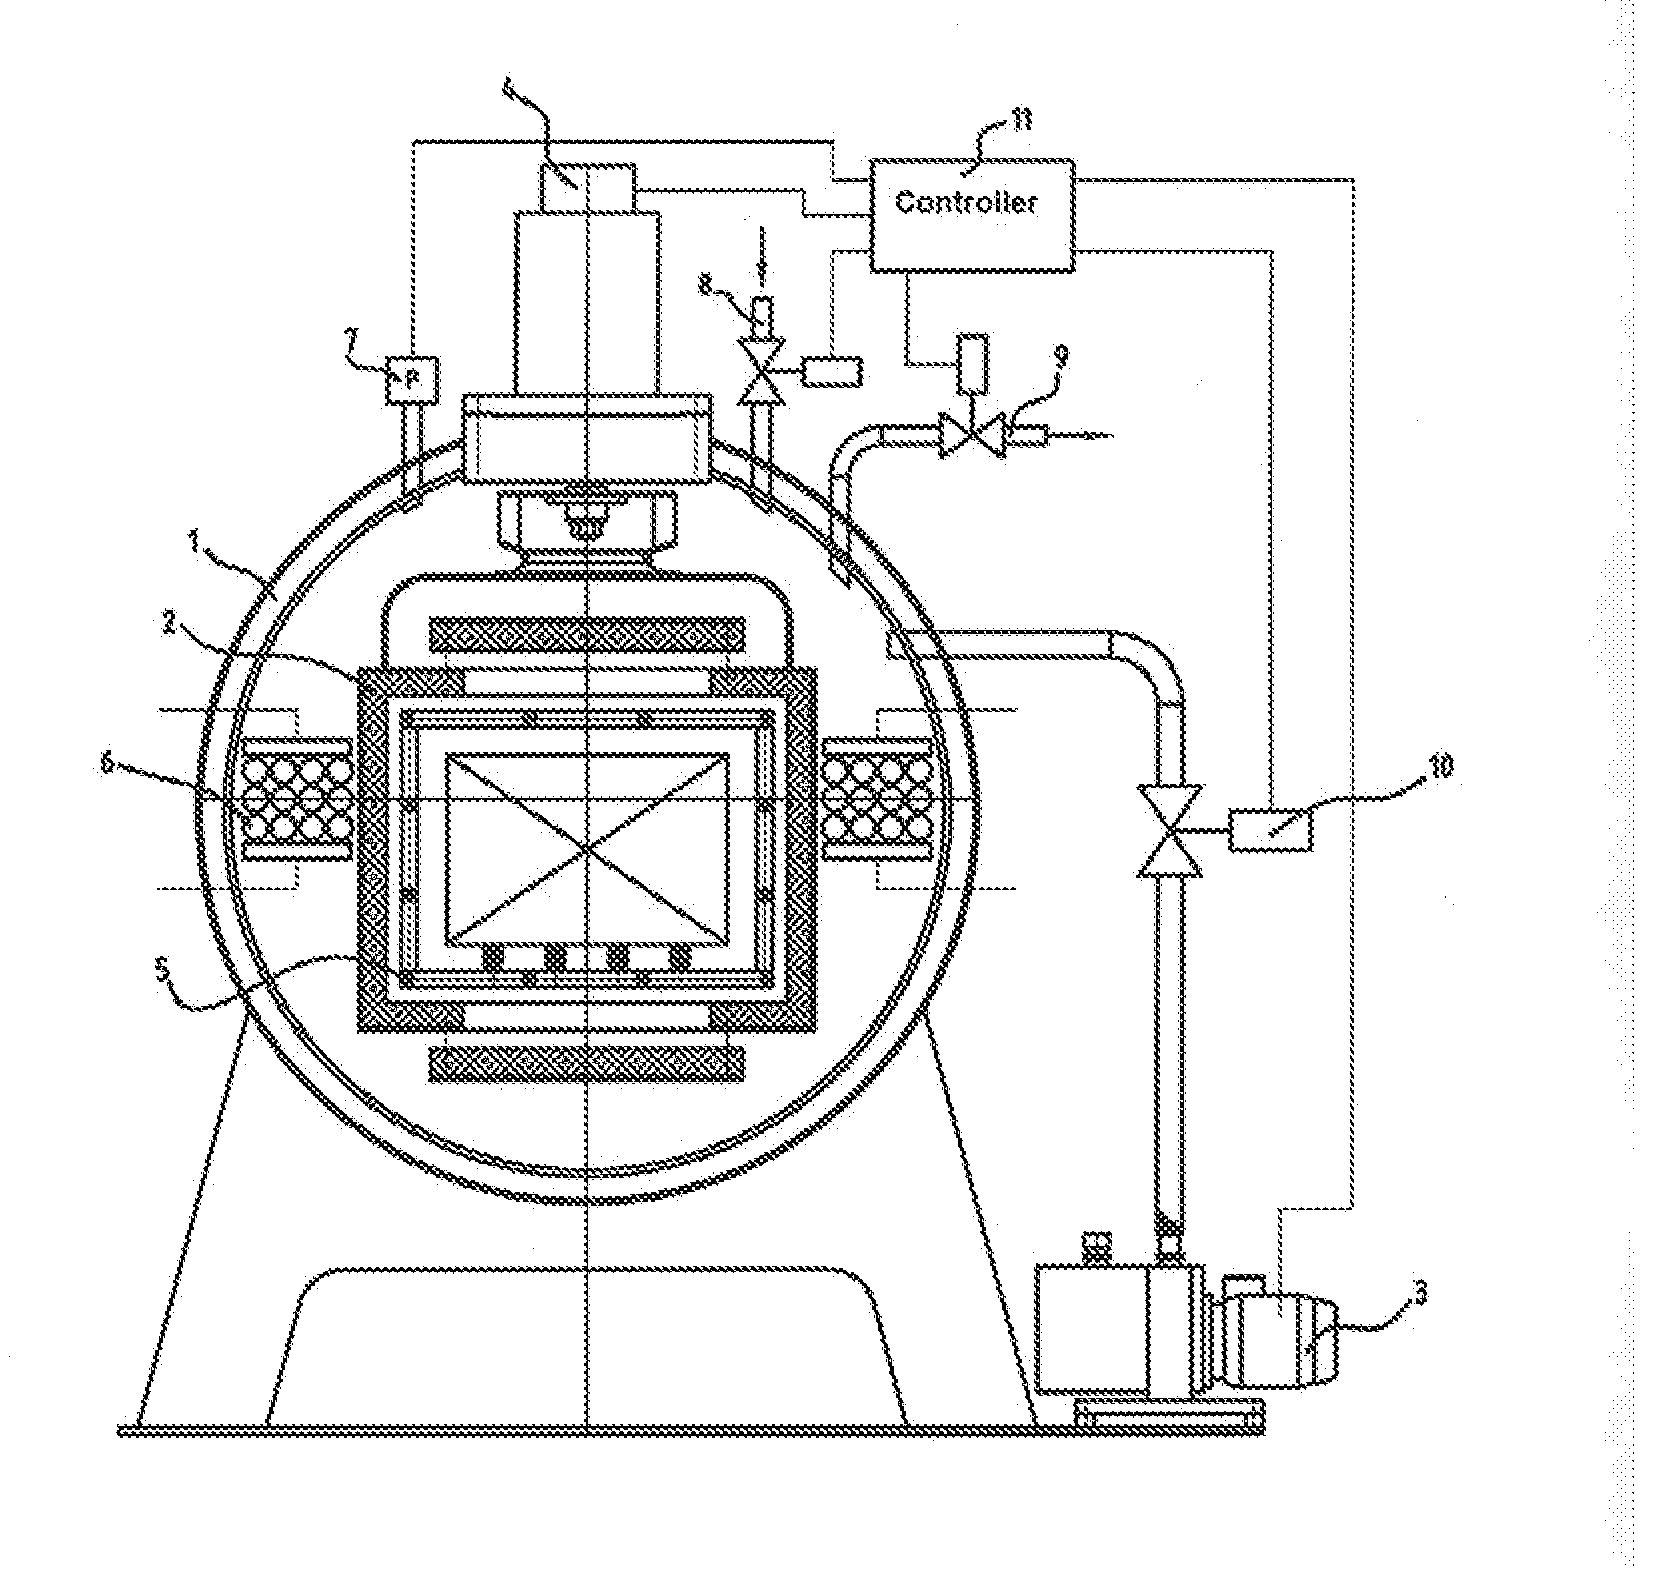 induction melting furnace schematic  induction  get free